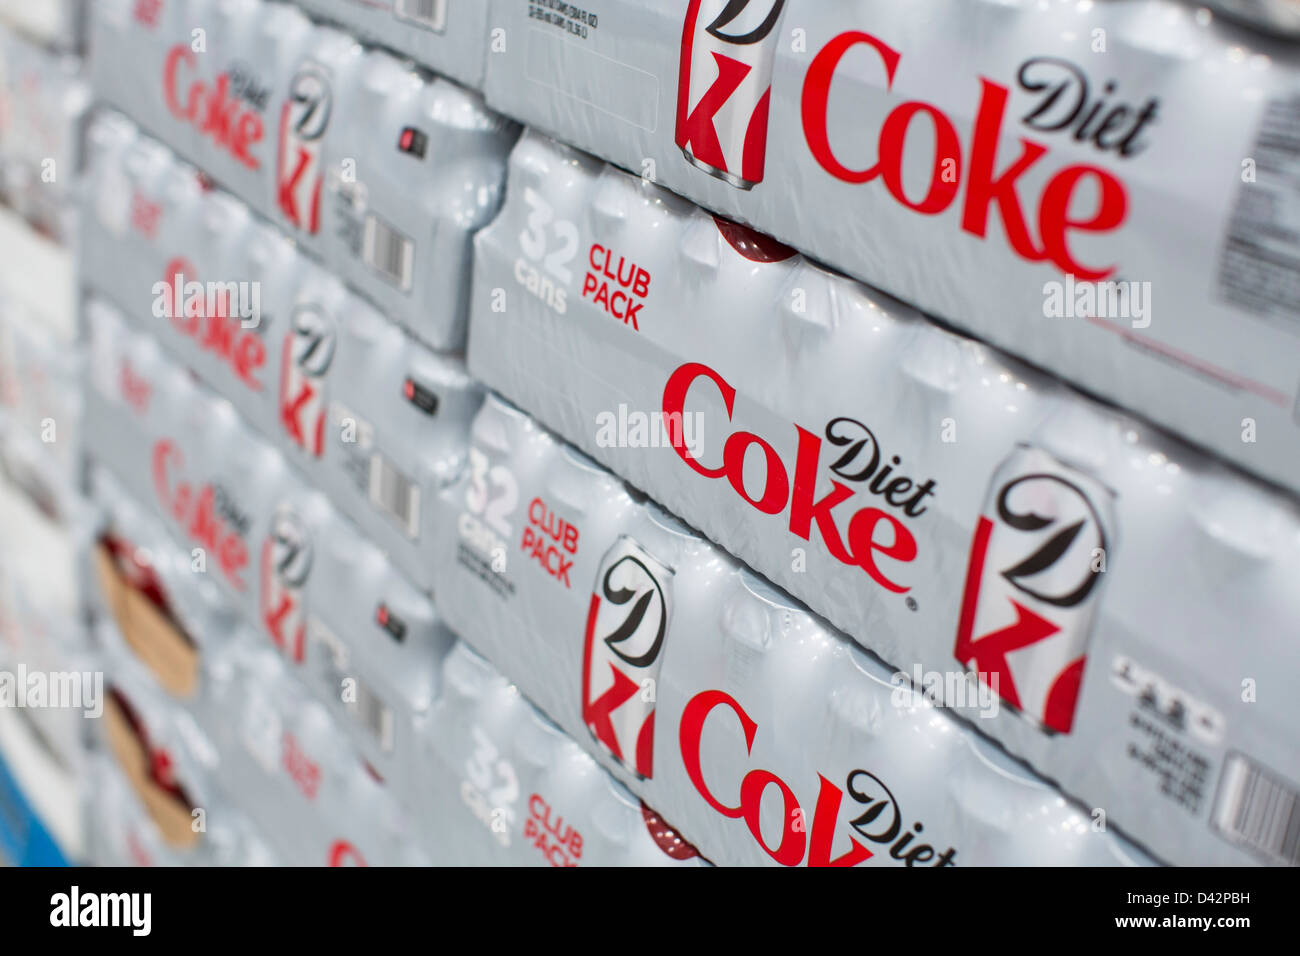 Diet coke on display at a Costco Wholesale Warehouse Club. - Stock Image